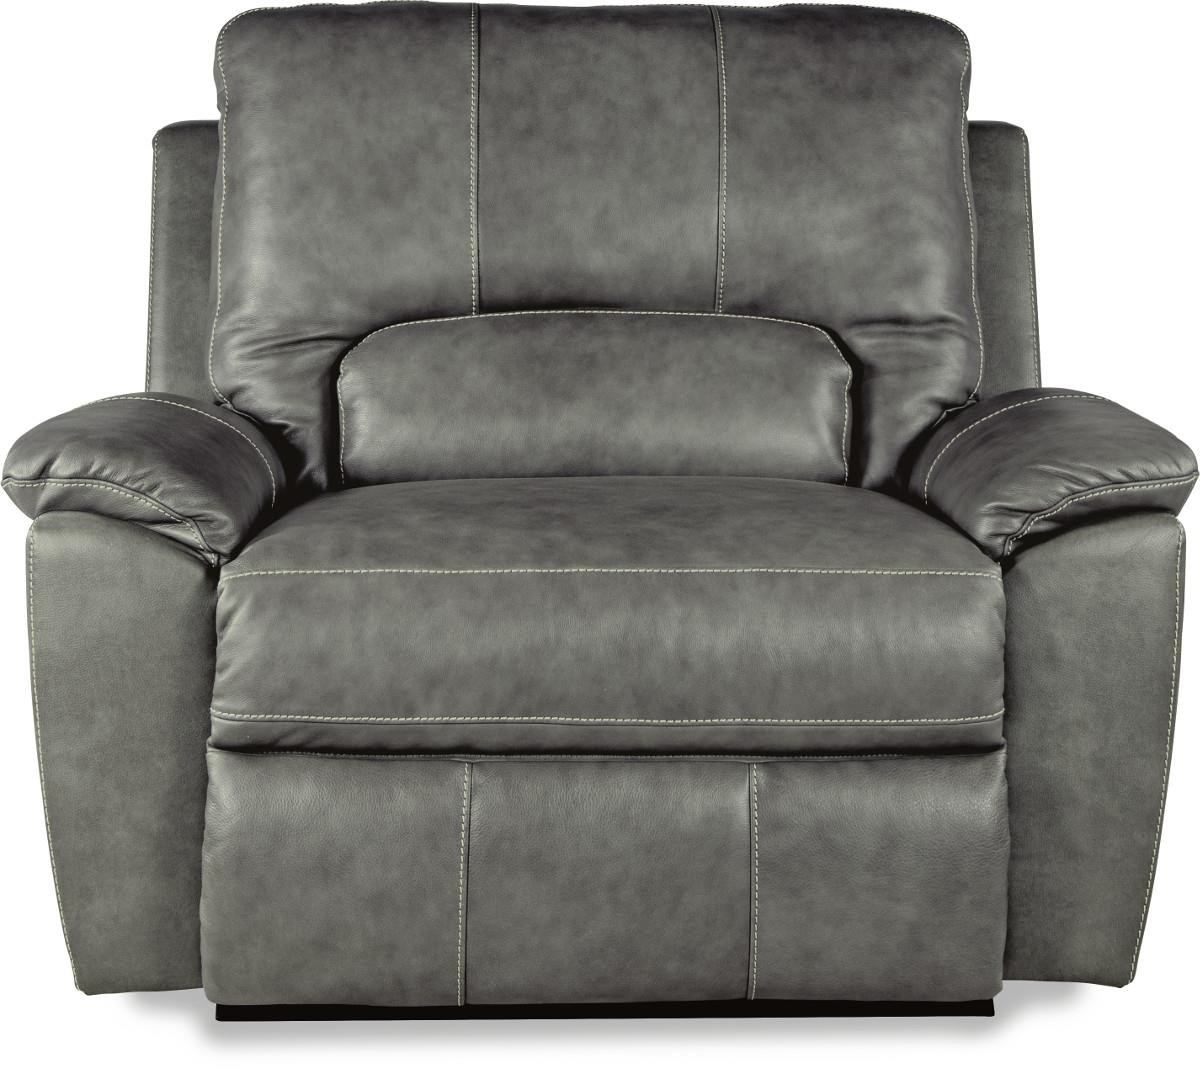 Recliner Shown May Not Represent Exact Features Indicated  sc 1 st  Novello Furniture & La-Z-Boy Charger La-Z-Time® Chair and a Half Recliner - Novello ... islam-shia.org